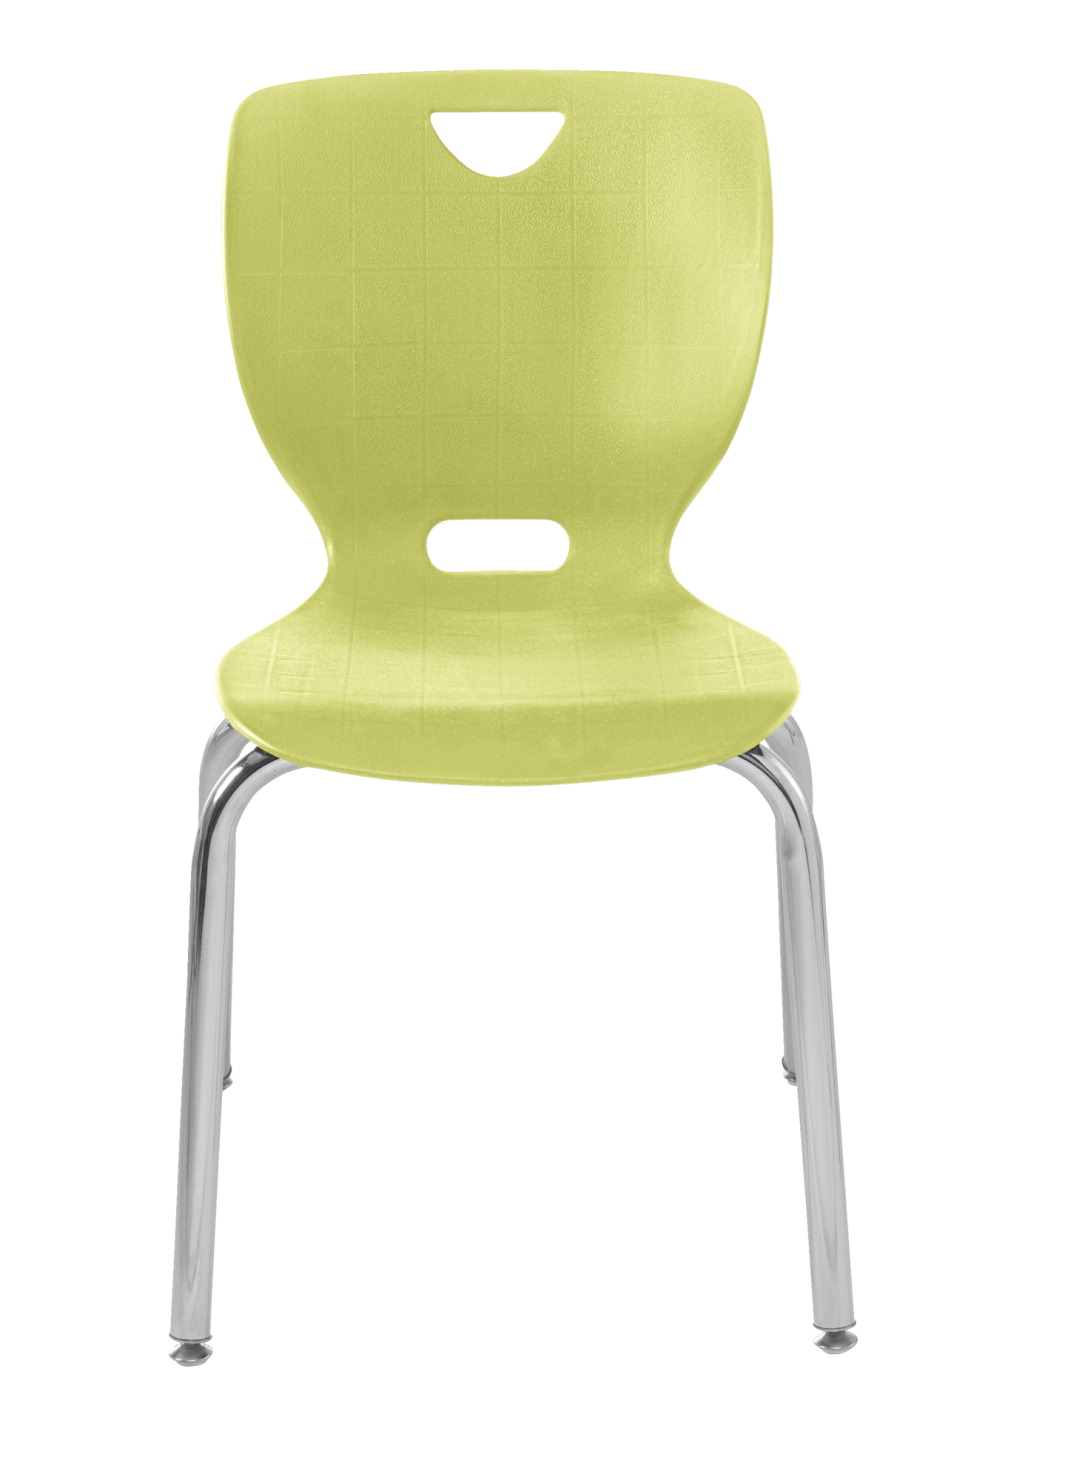 Classroom Select NeoClass Smooth Back Chair, 18 Inch Seat Height, Chrome Frame, Various Options